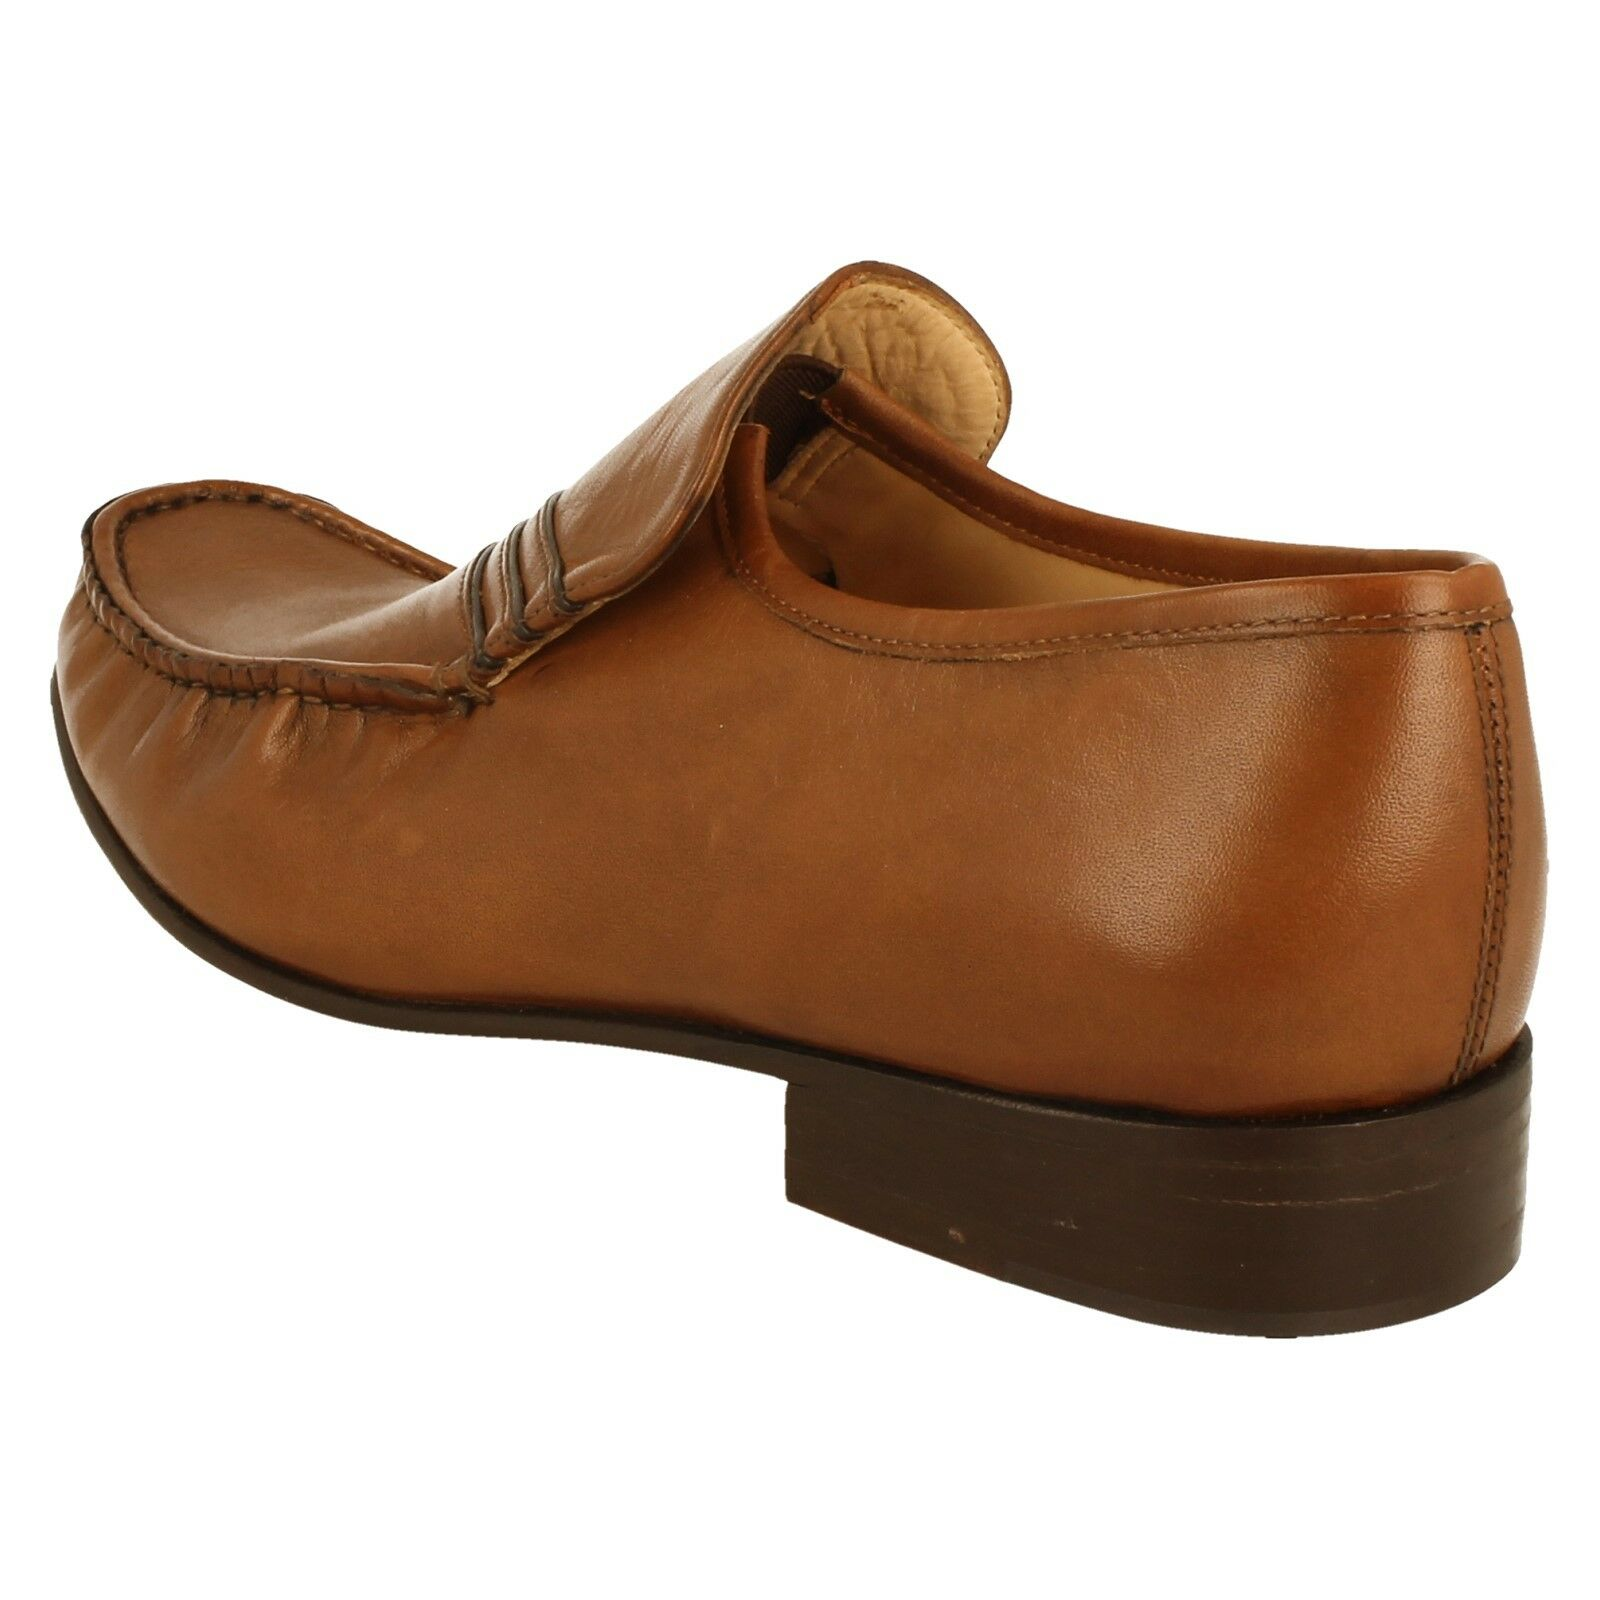 Men's/Women's Mens Grenson Shoes - 9682 sturdy Elegant and sturdy 9682 set meal Optimal price King of the crowd 00ad51